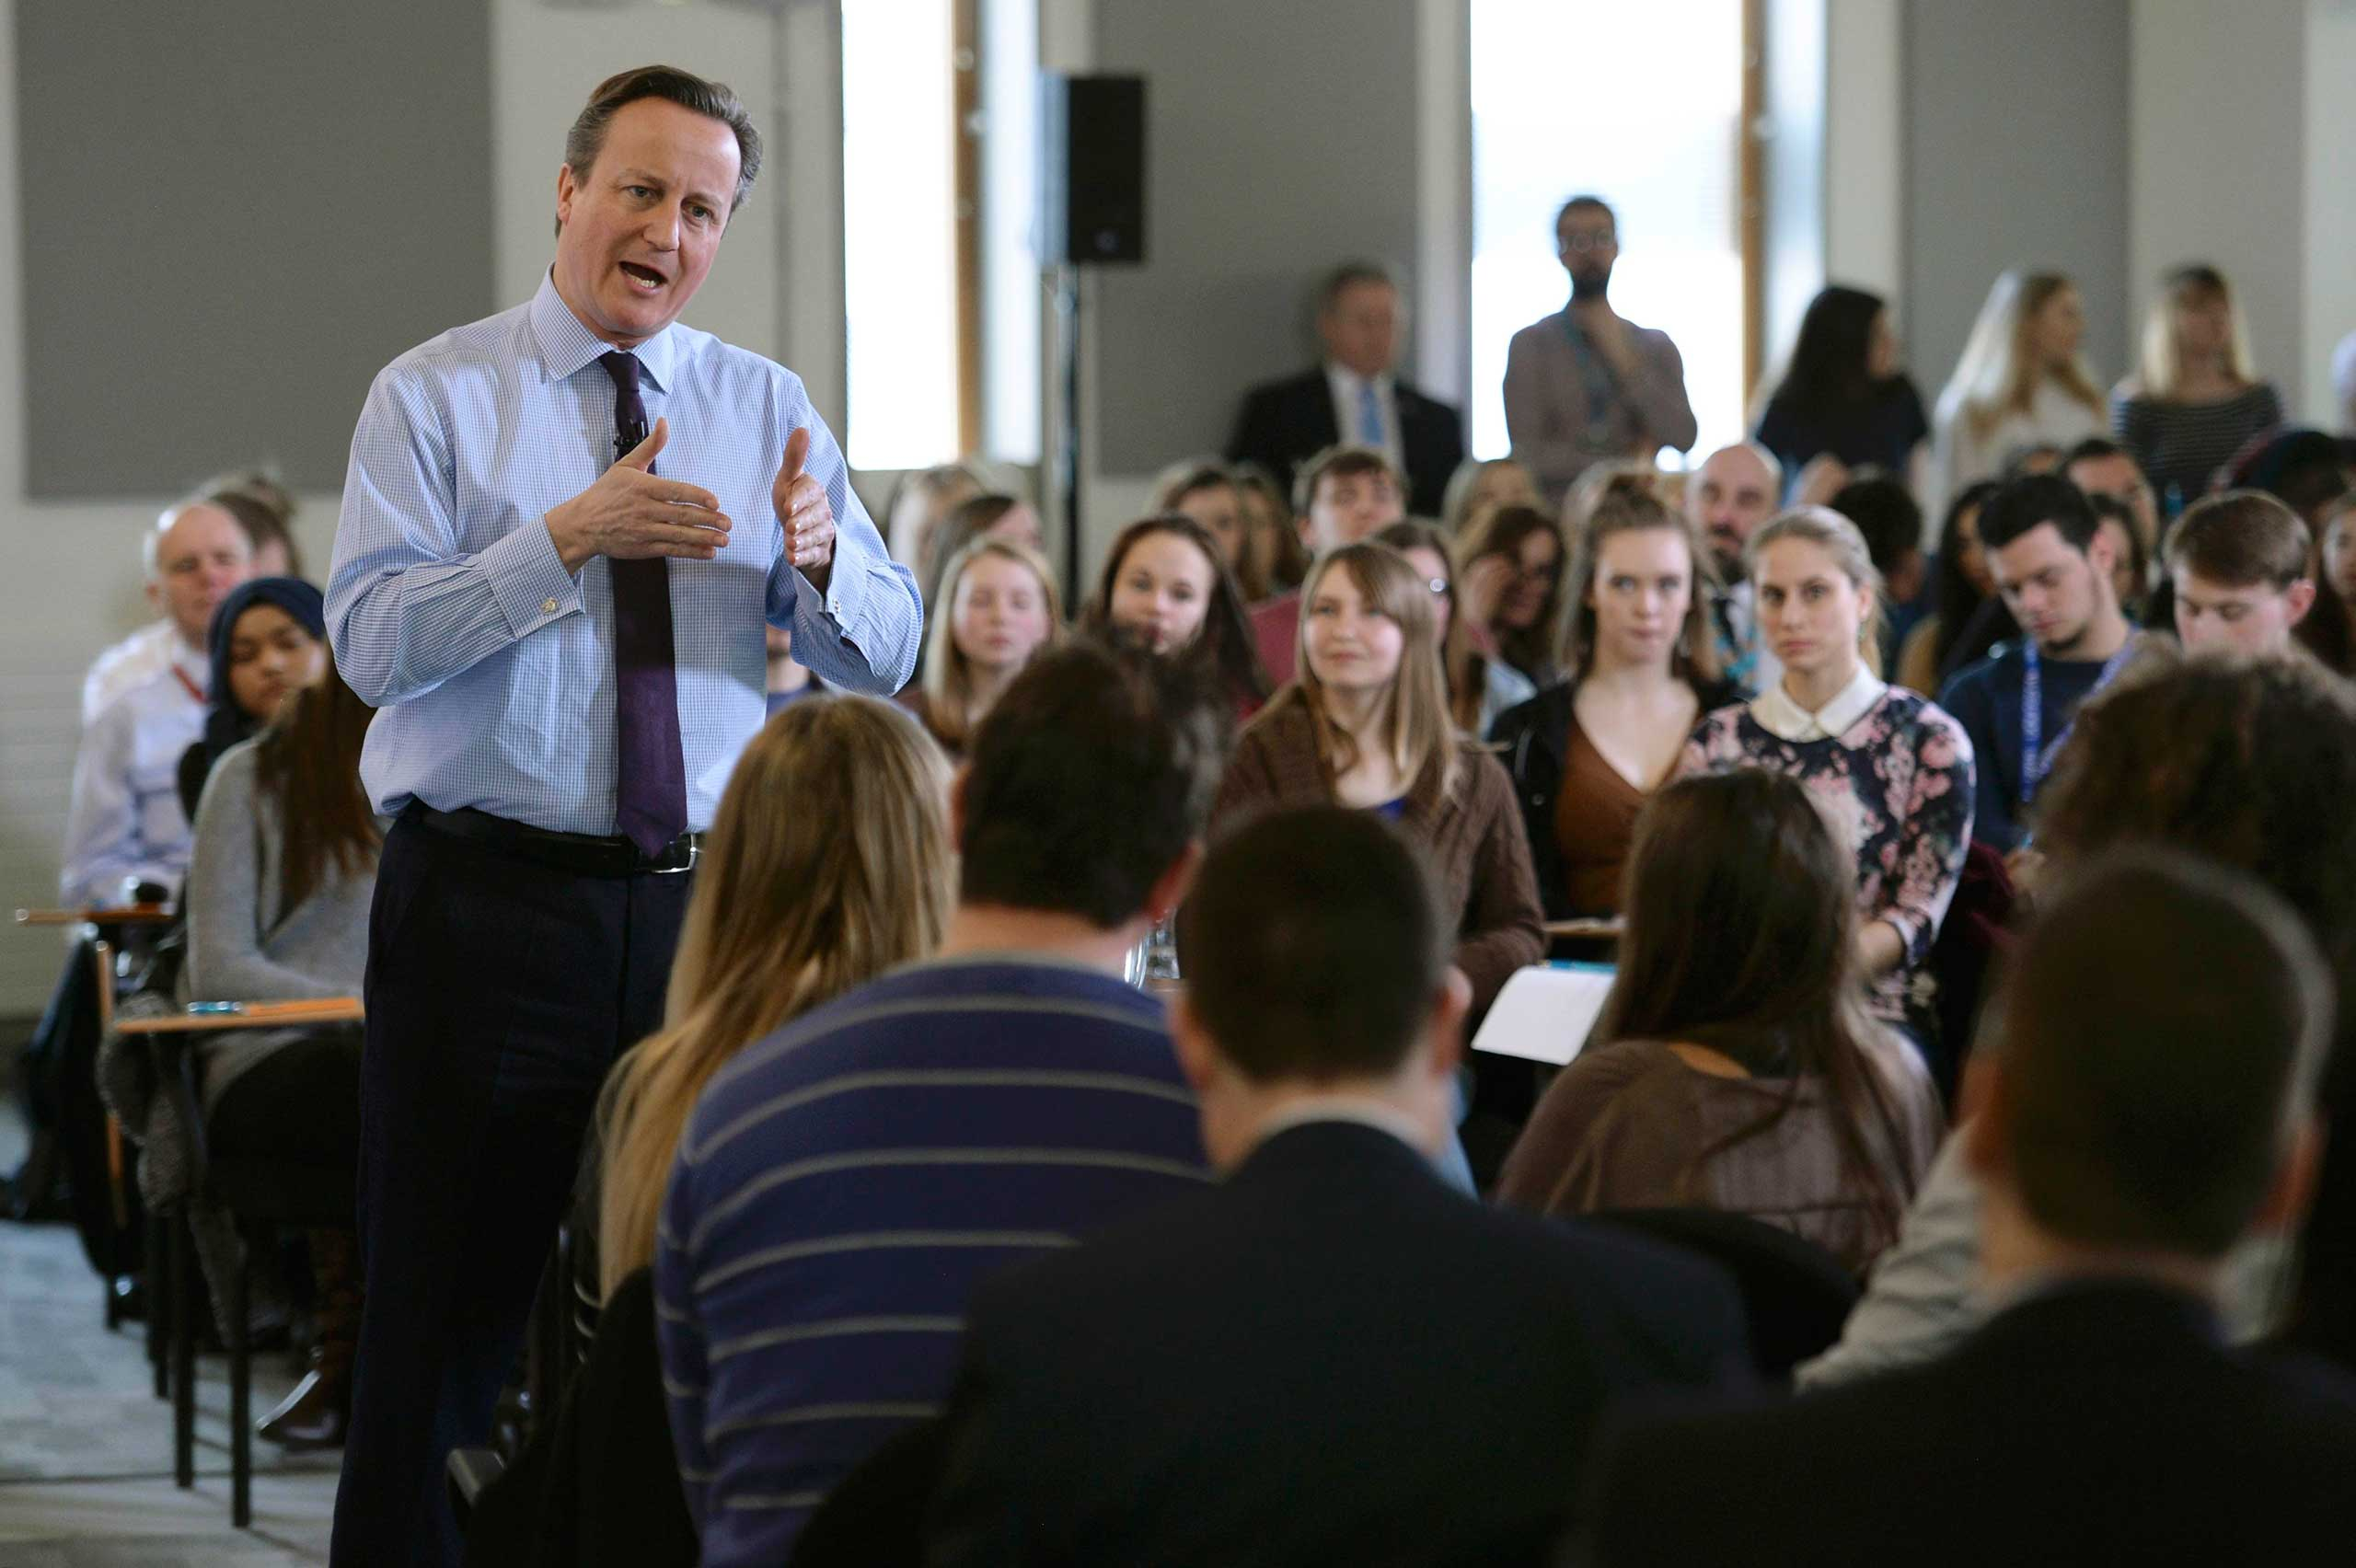 British Prime Minister David Cameron holds a question and answer session with students at University Campus Suffolk in Ipswich, Britain Feb. 29, 2016.